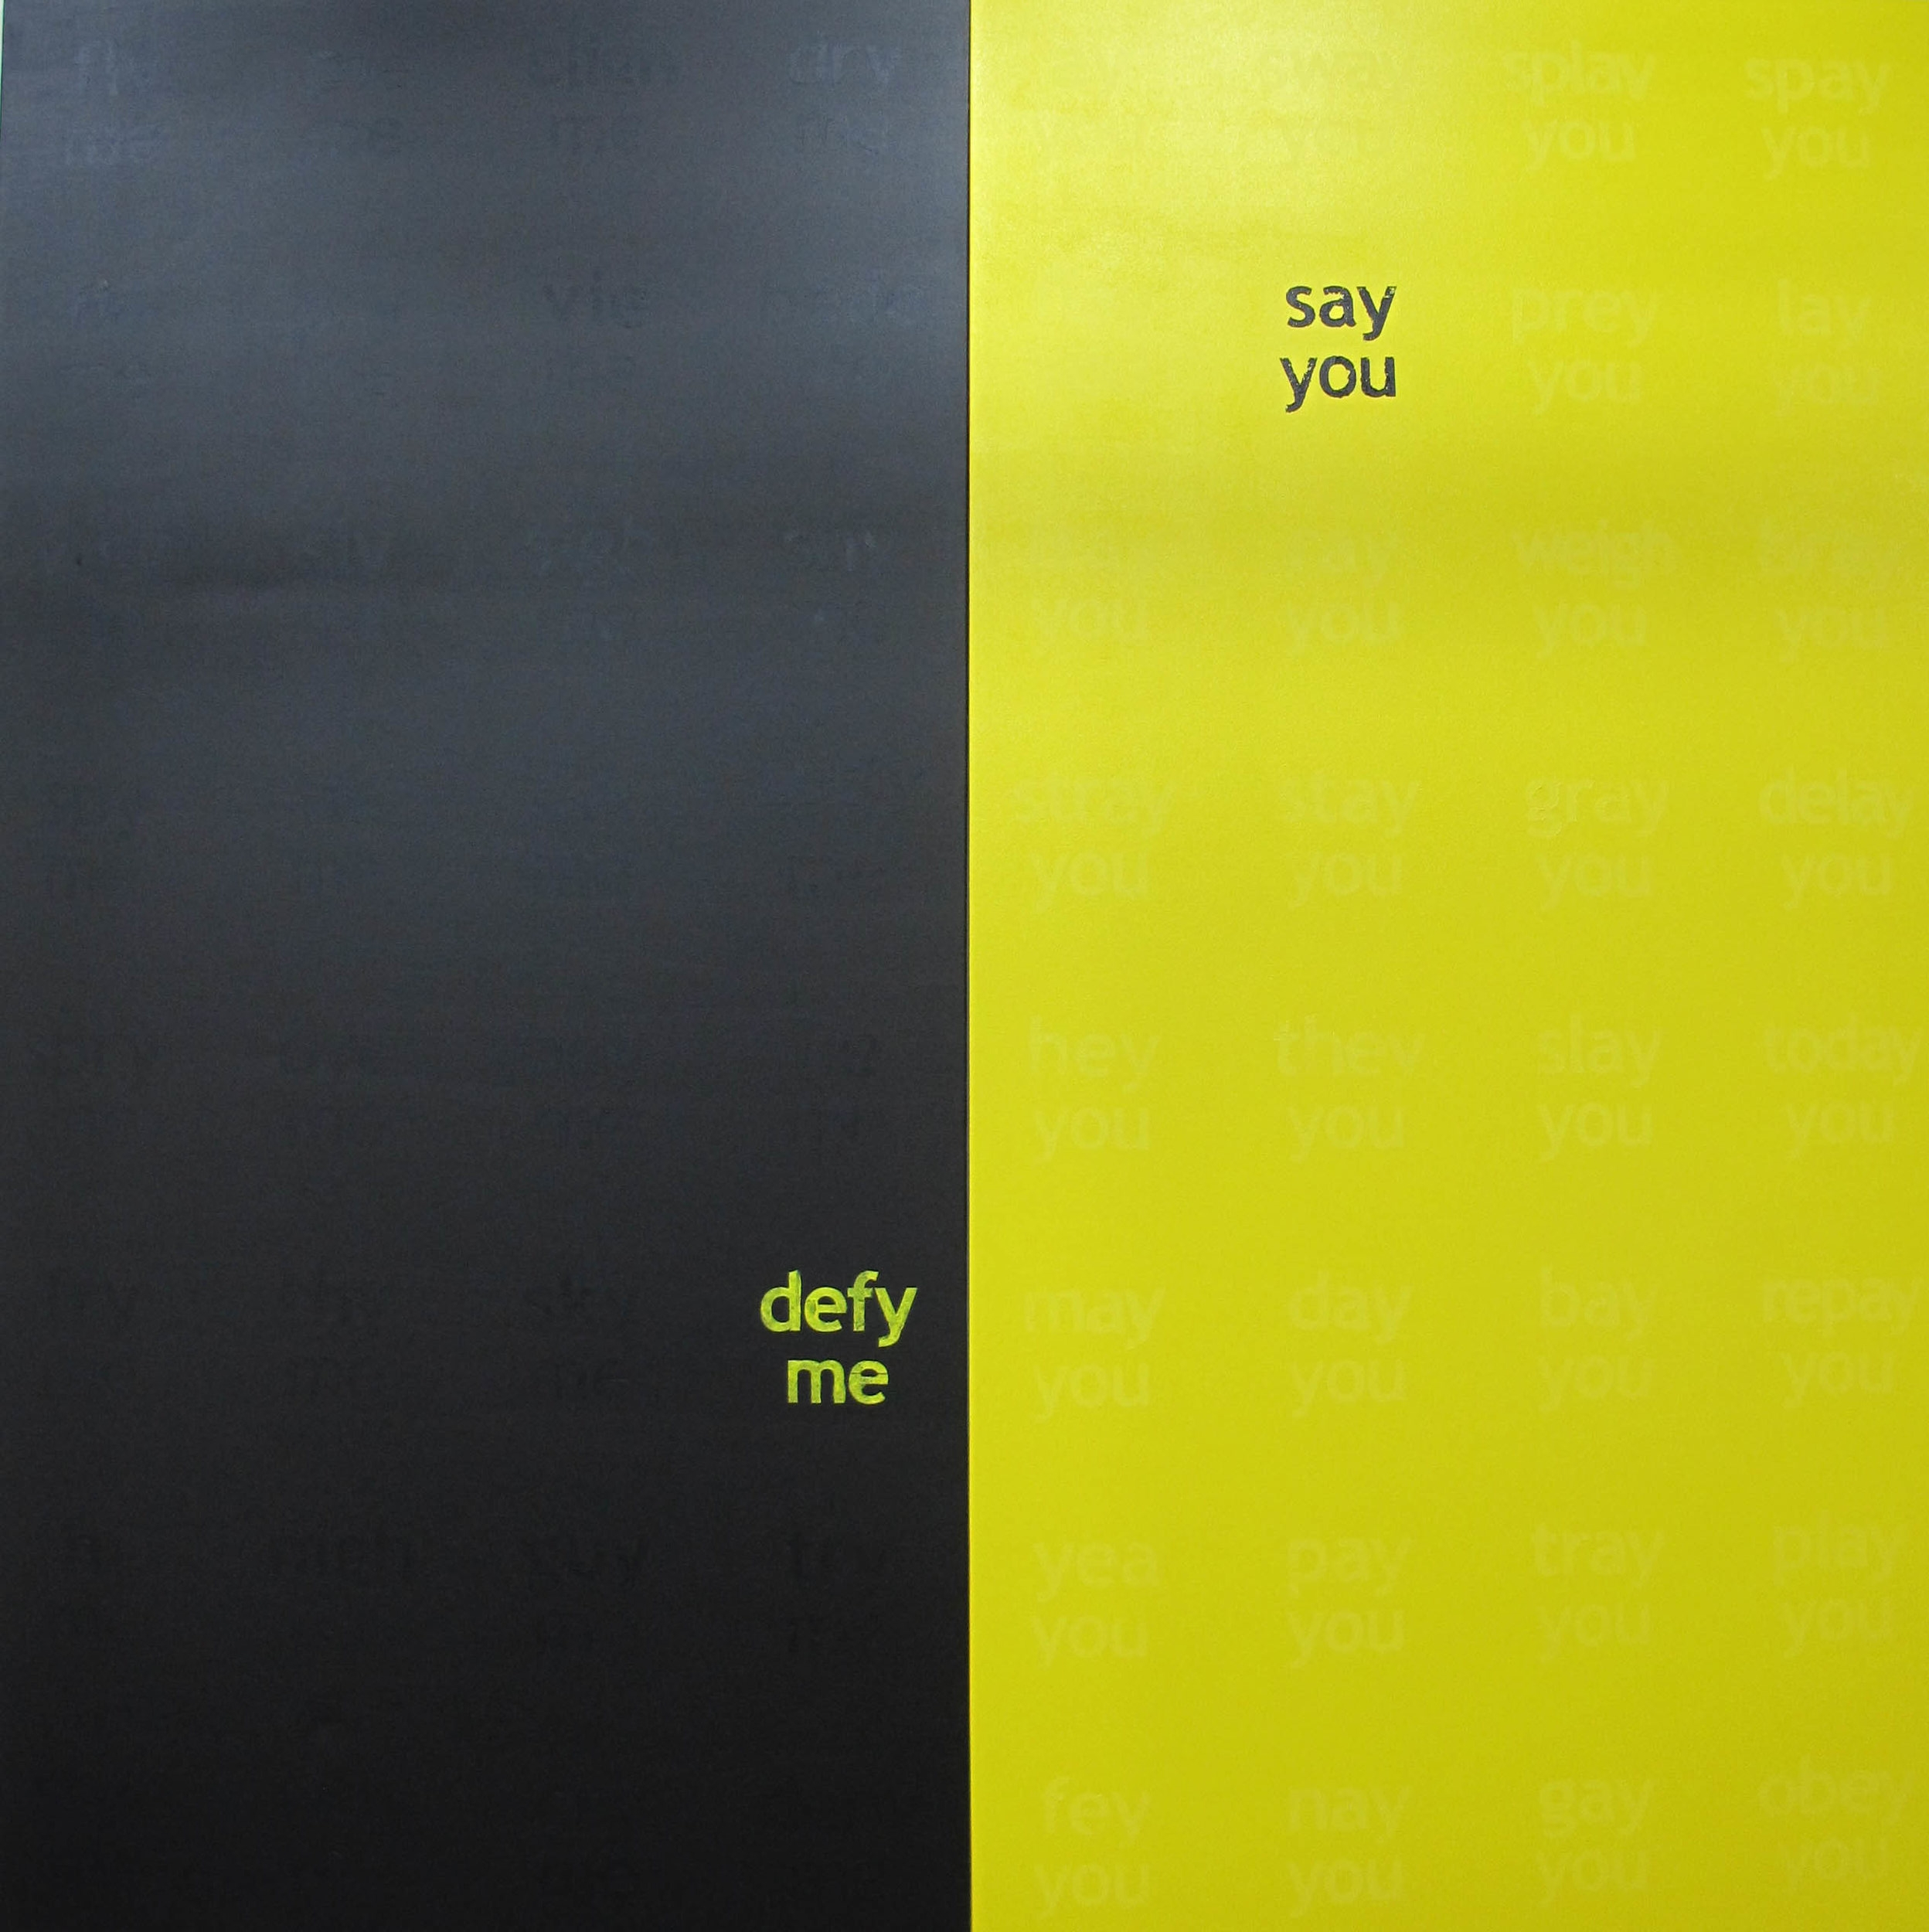 Michael Carolan,  deny me, say you , 2012, acrylic on canvas